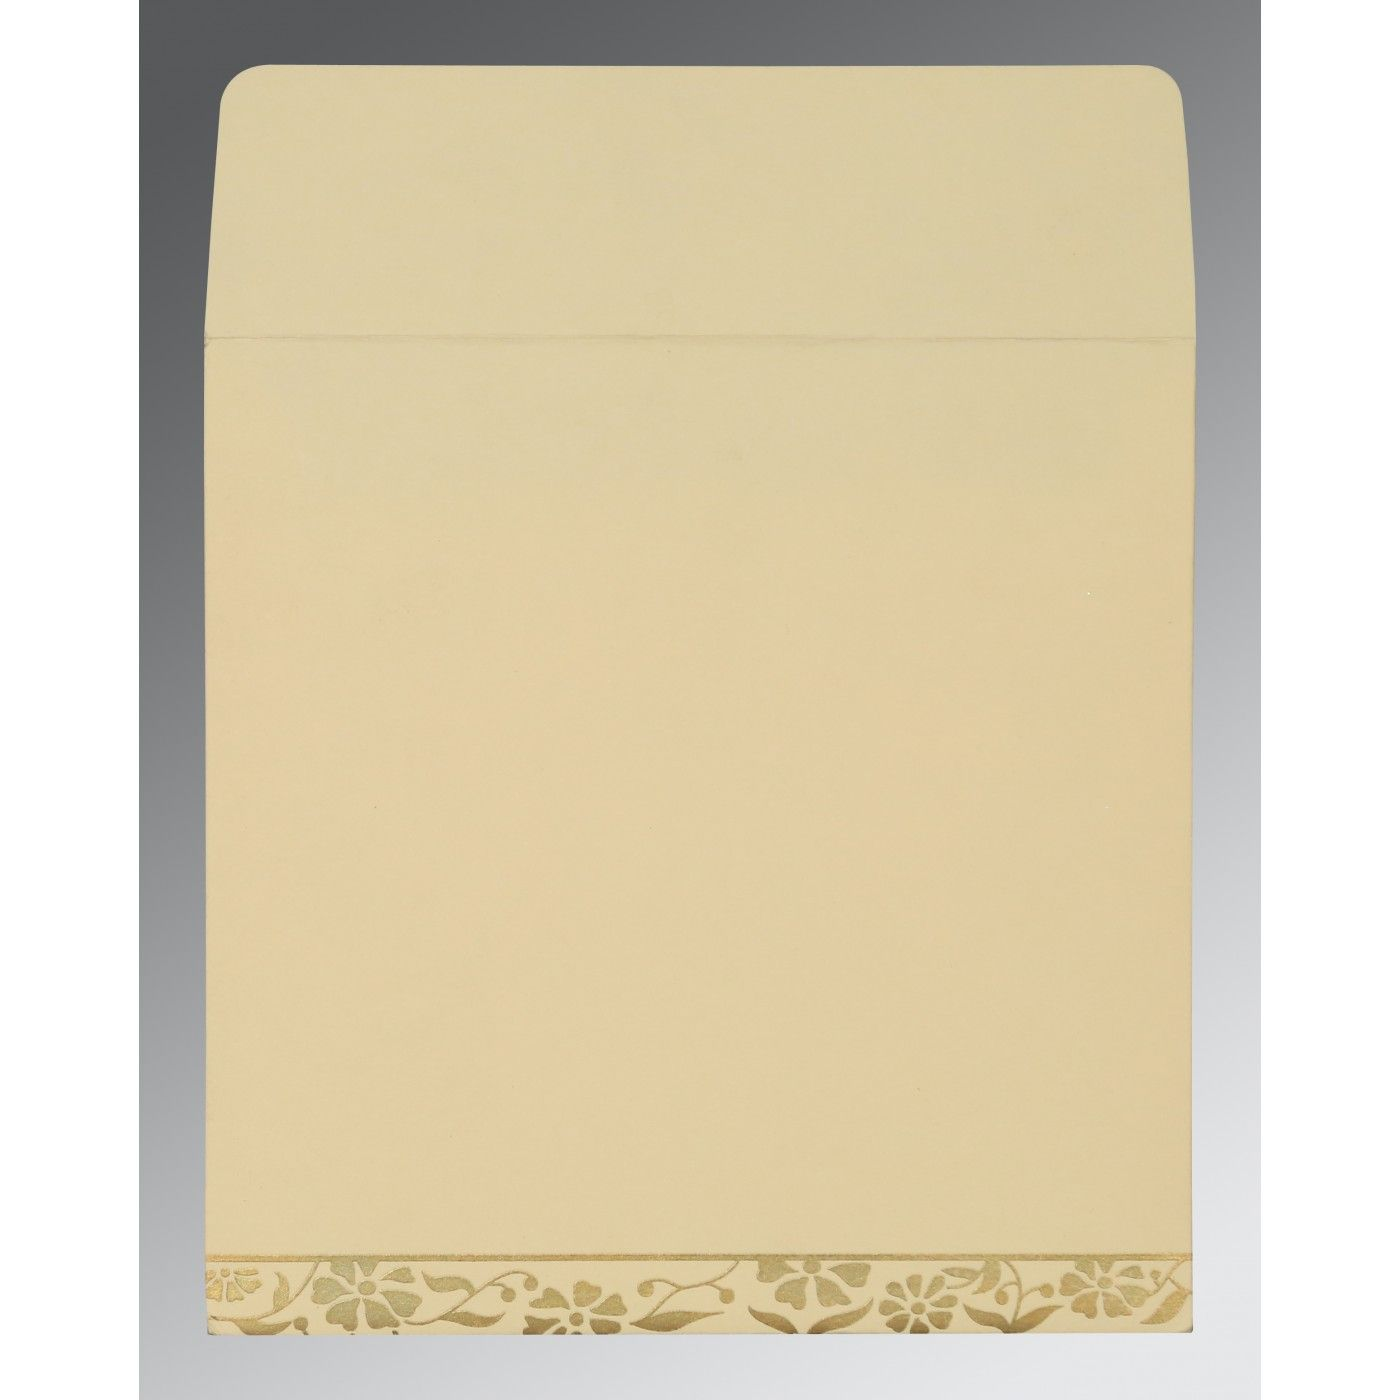 OFF-WHITE MATTE FLORAL THEMED - SCREEN PRINTED WEDDING CARD : CD-8222I - IndianWeddingCards